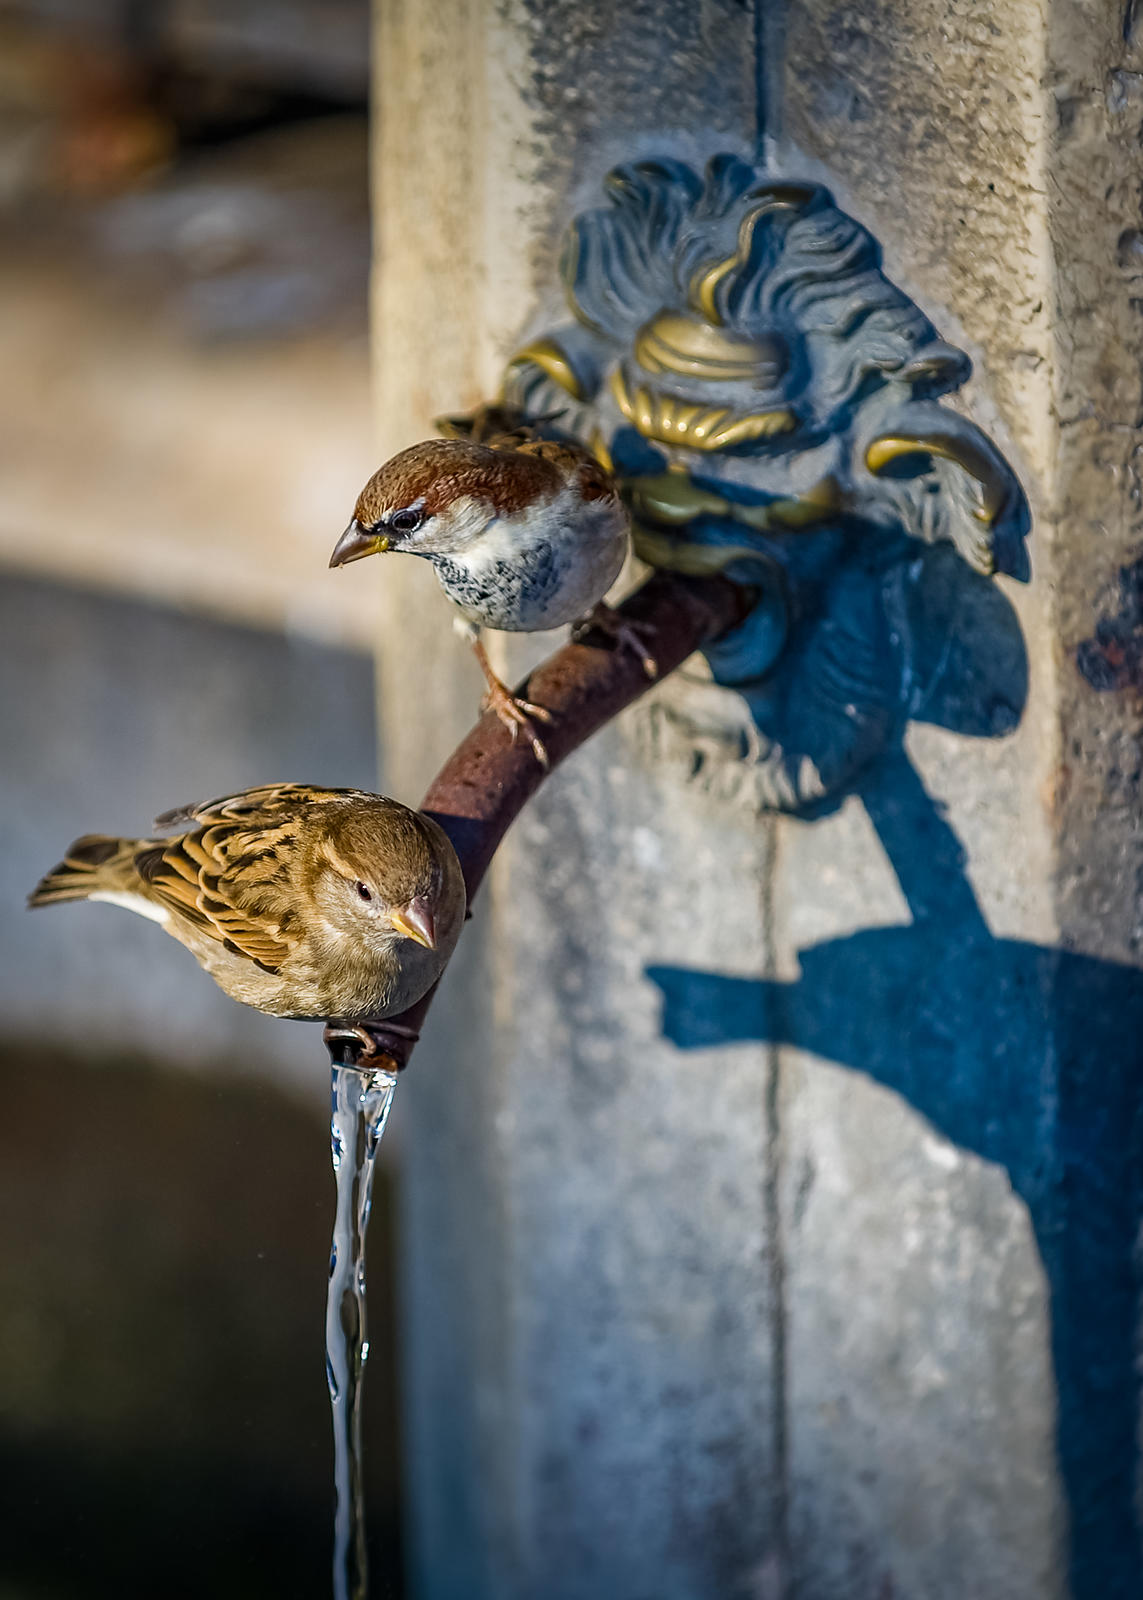 Birds Drinking from an Ornate Fountain on the Promenade at San Marco, Venice